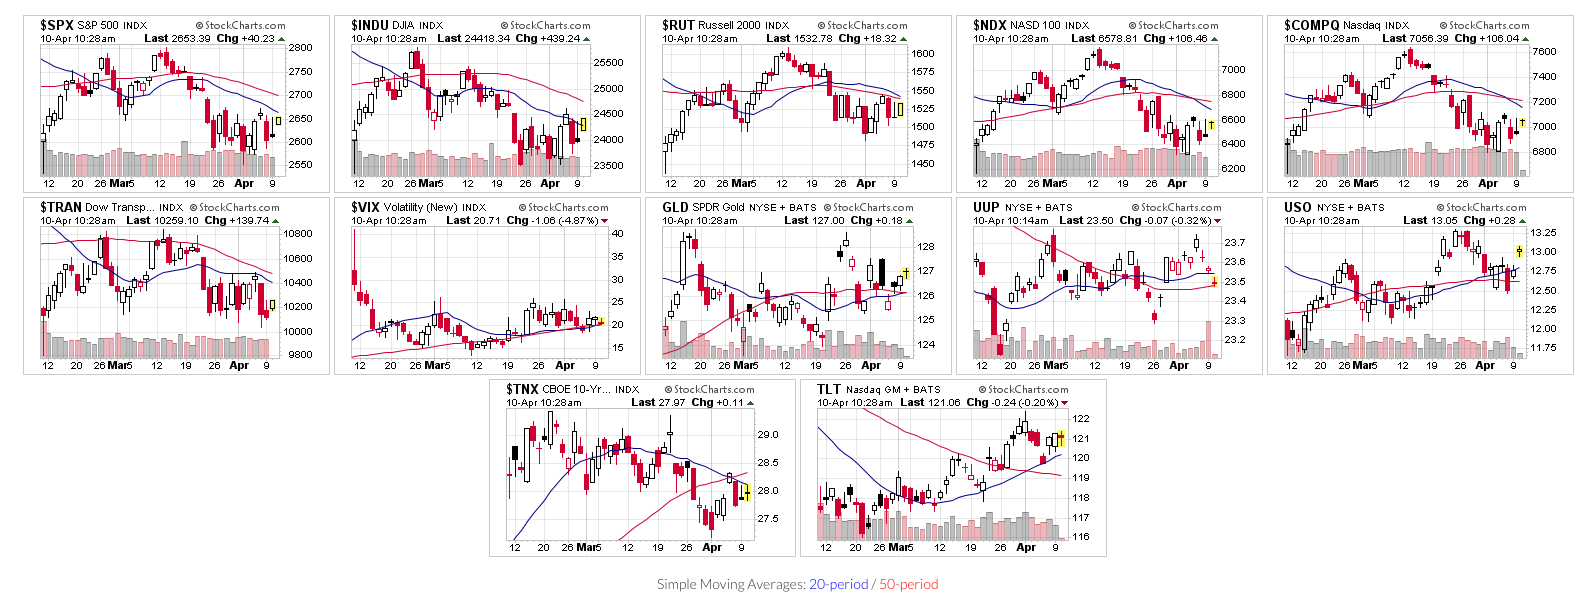 Screen Shot 2018-04-10 at 7.29.33 AM.png